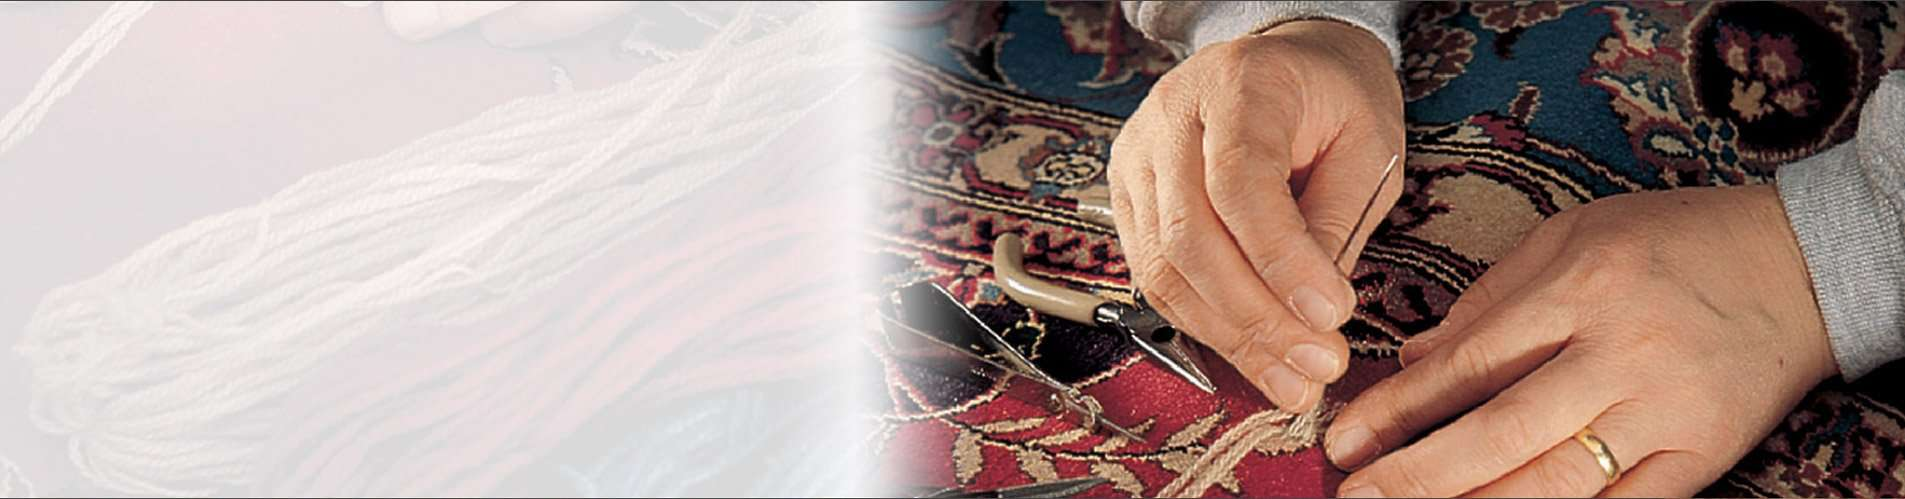 Rug-Repair-Philadelphia